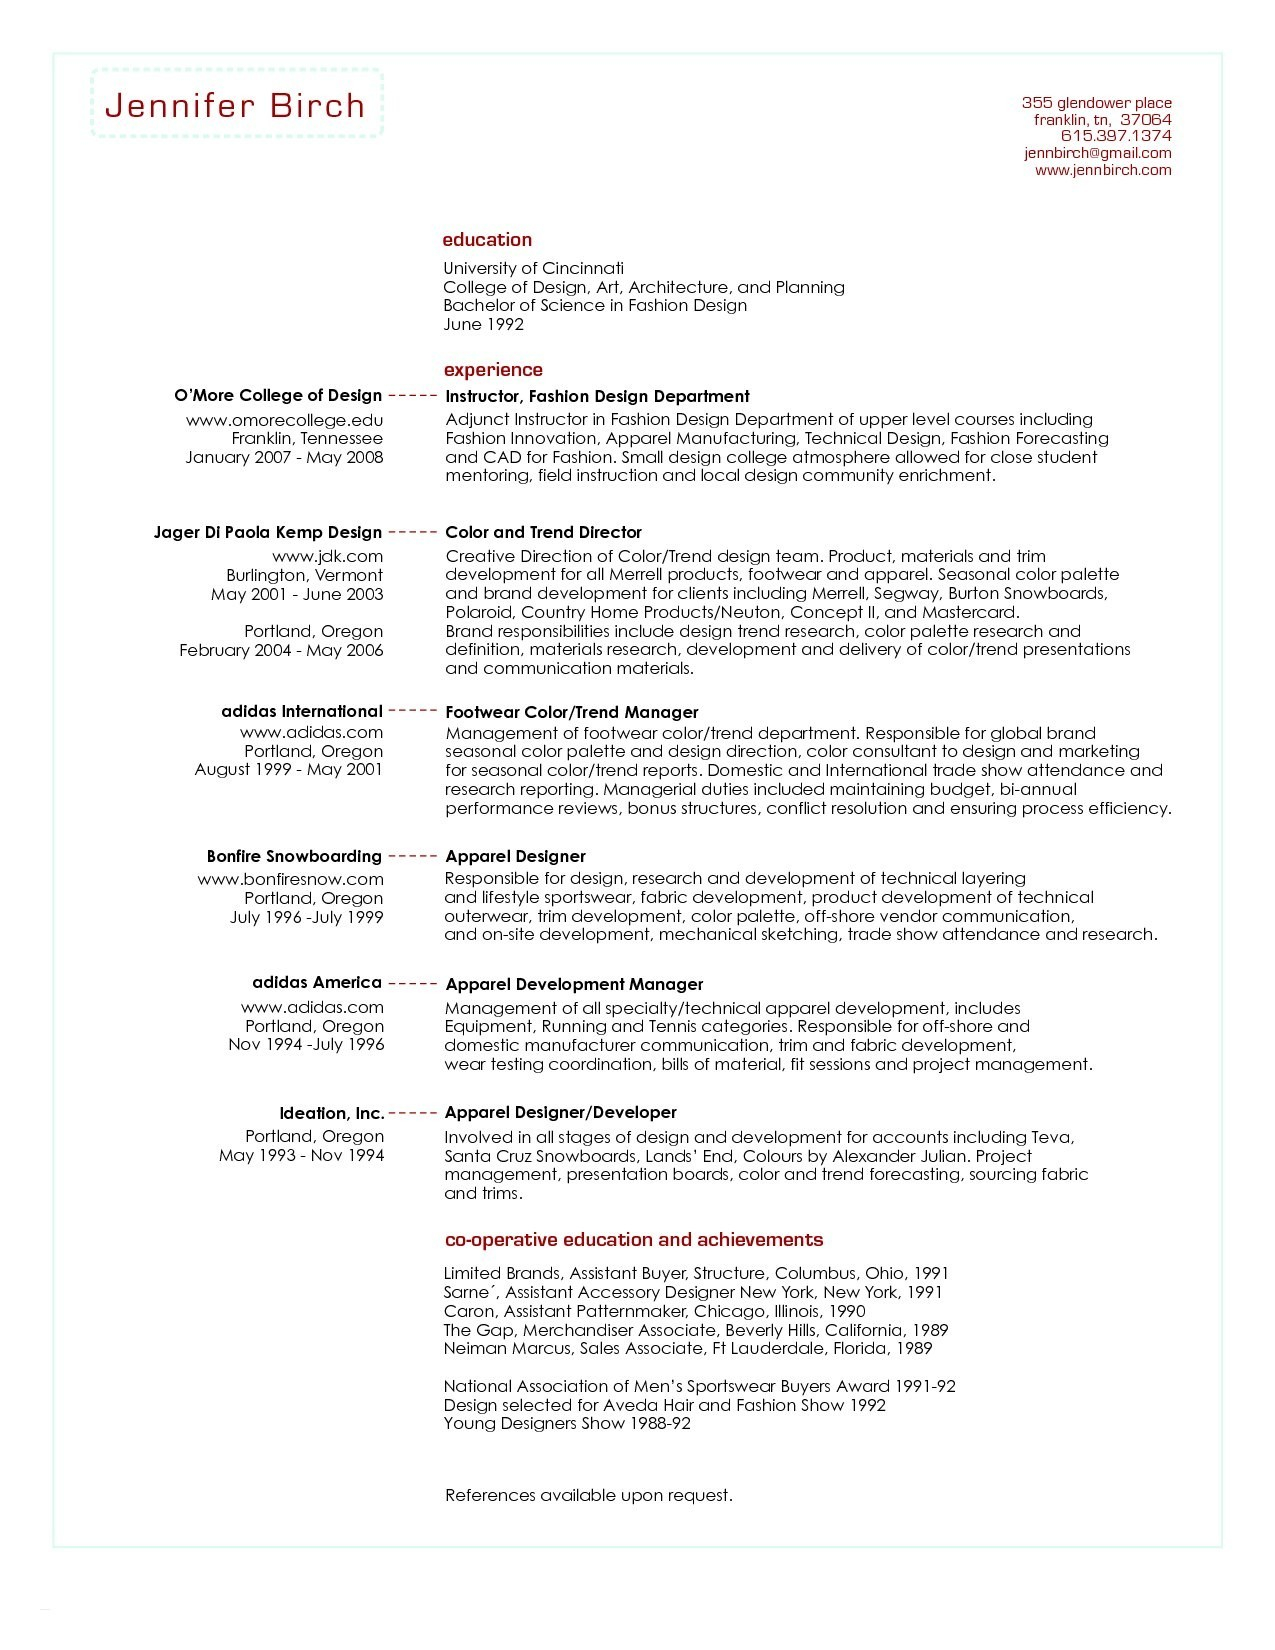 Performance Resume - Sample Sales Management Resume New Retail Store Manager Resume Best